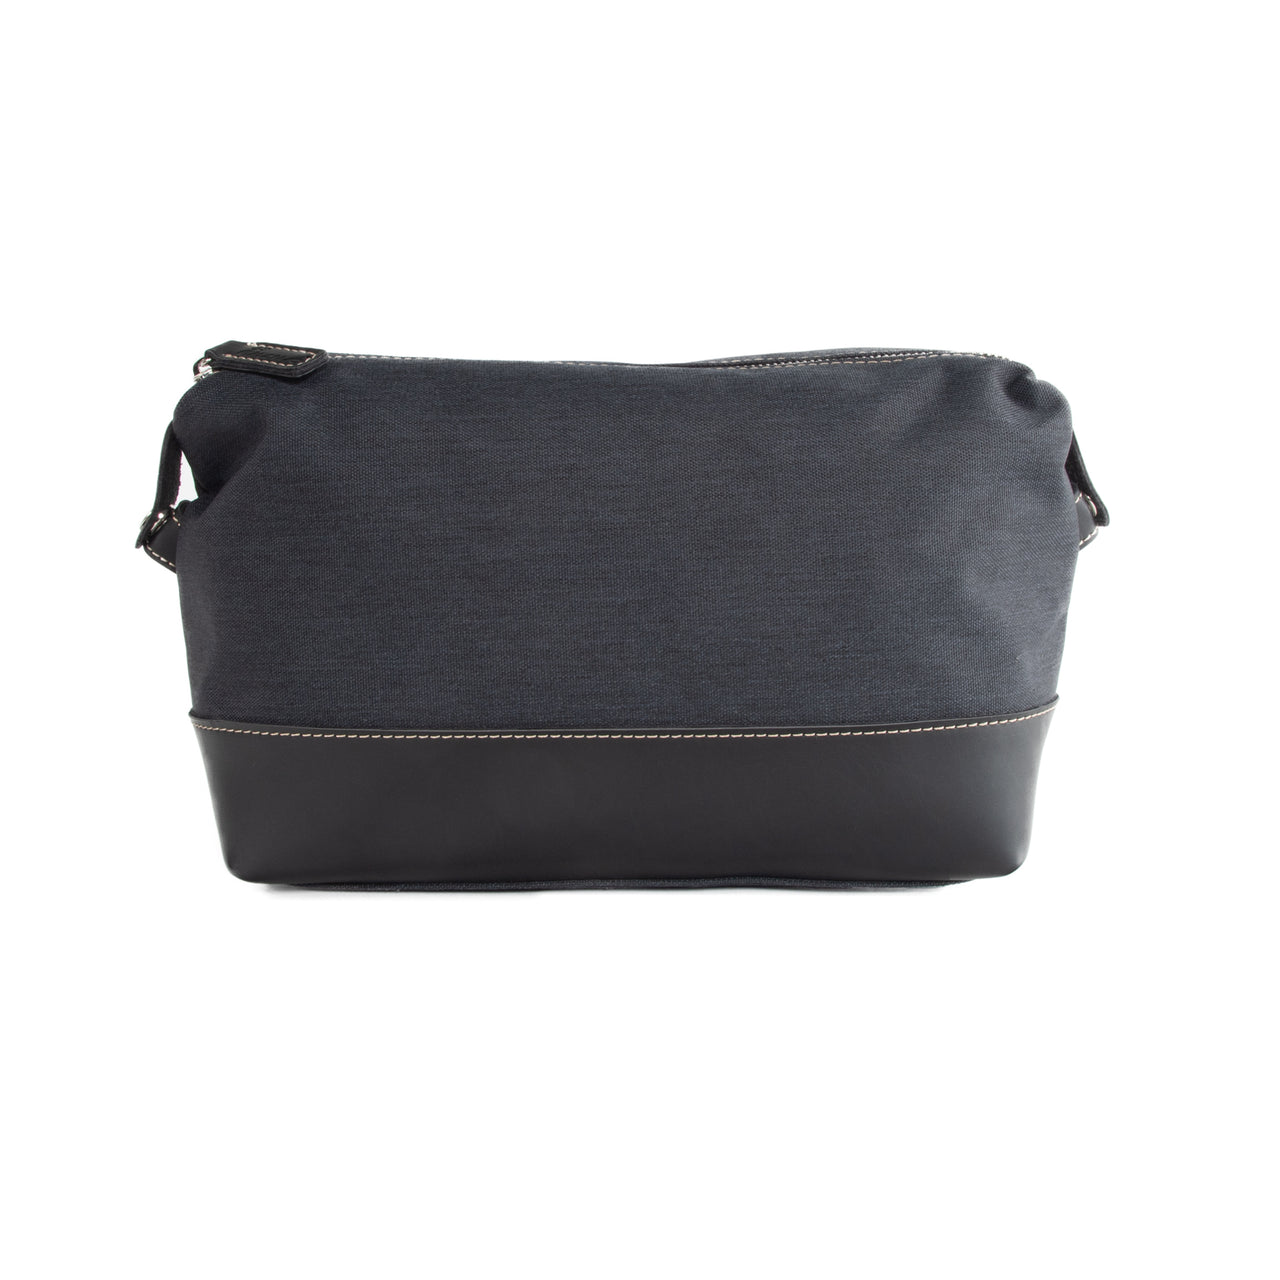 The Getaway Toiletry Bag